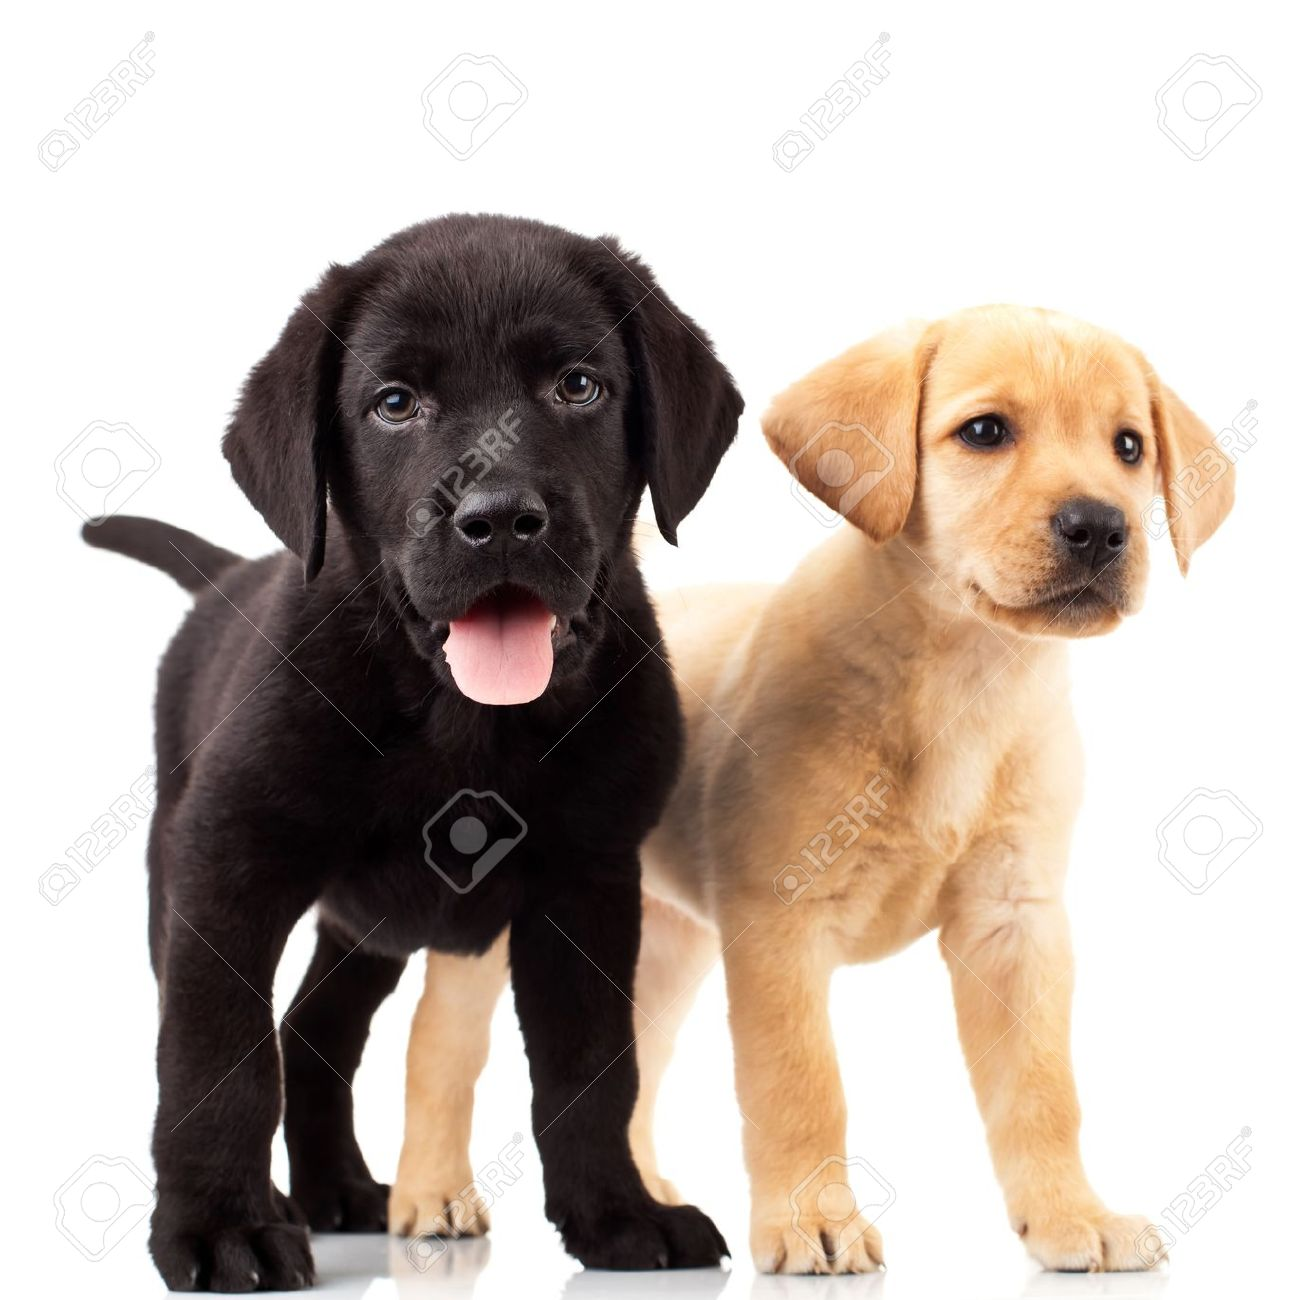 Two Cute Labrador Puppies - One With Mouth Open And One Looking ... for Cute Lab Dog Puppy  17lplyp